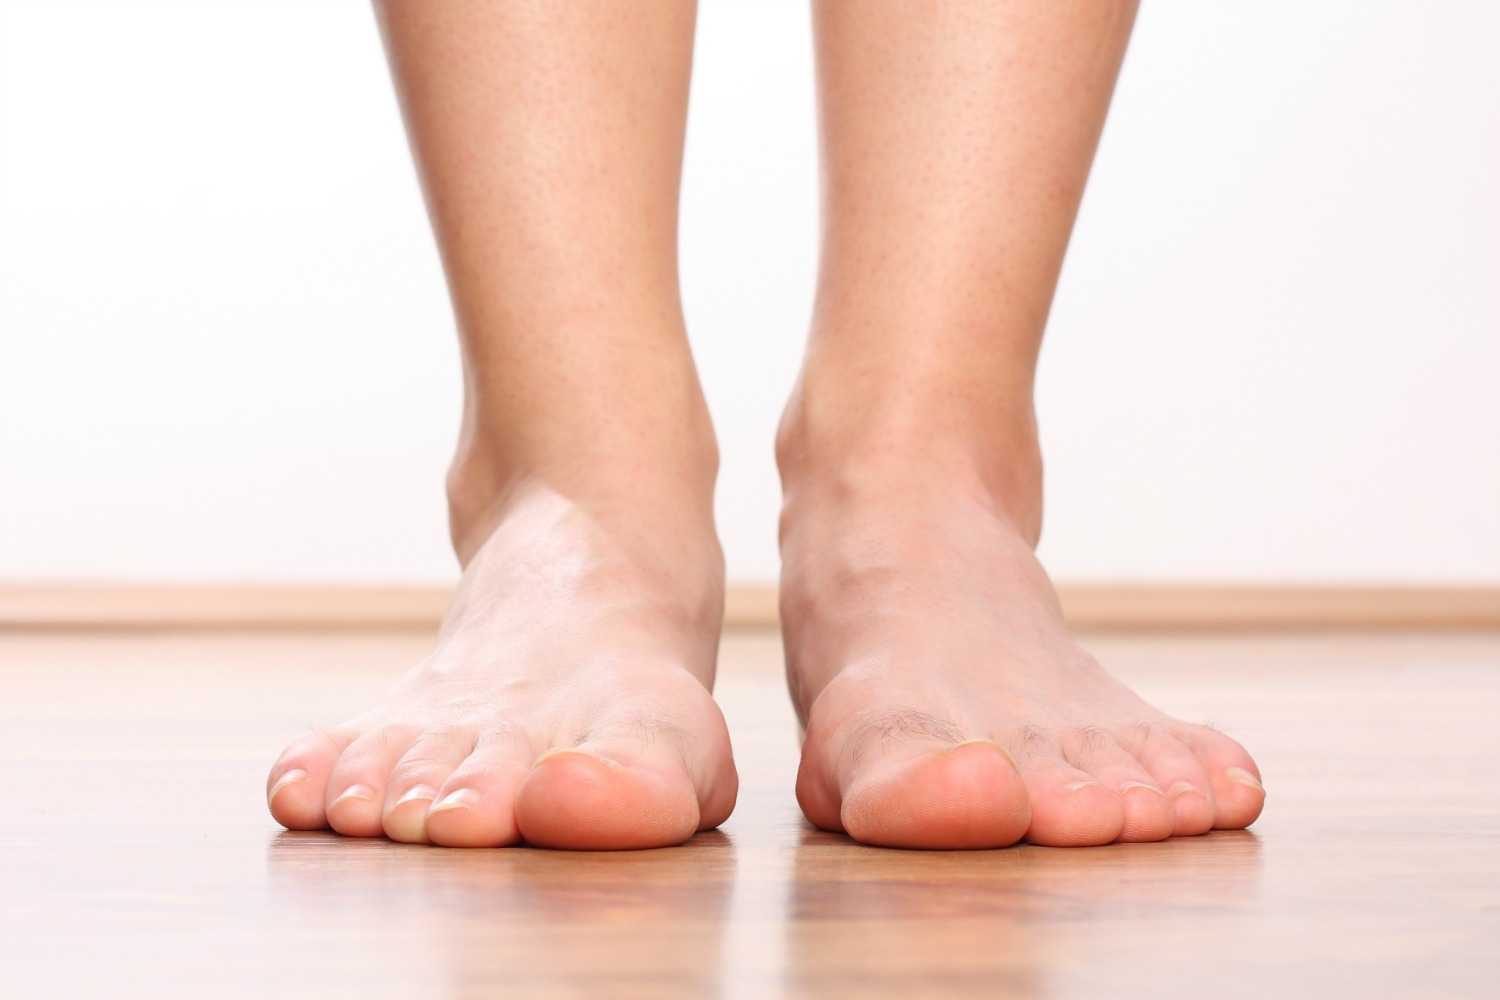 Don't Let Diabetes Knock You Off Your Feet